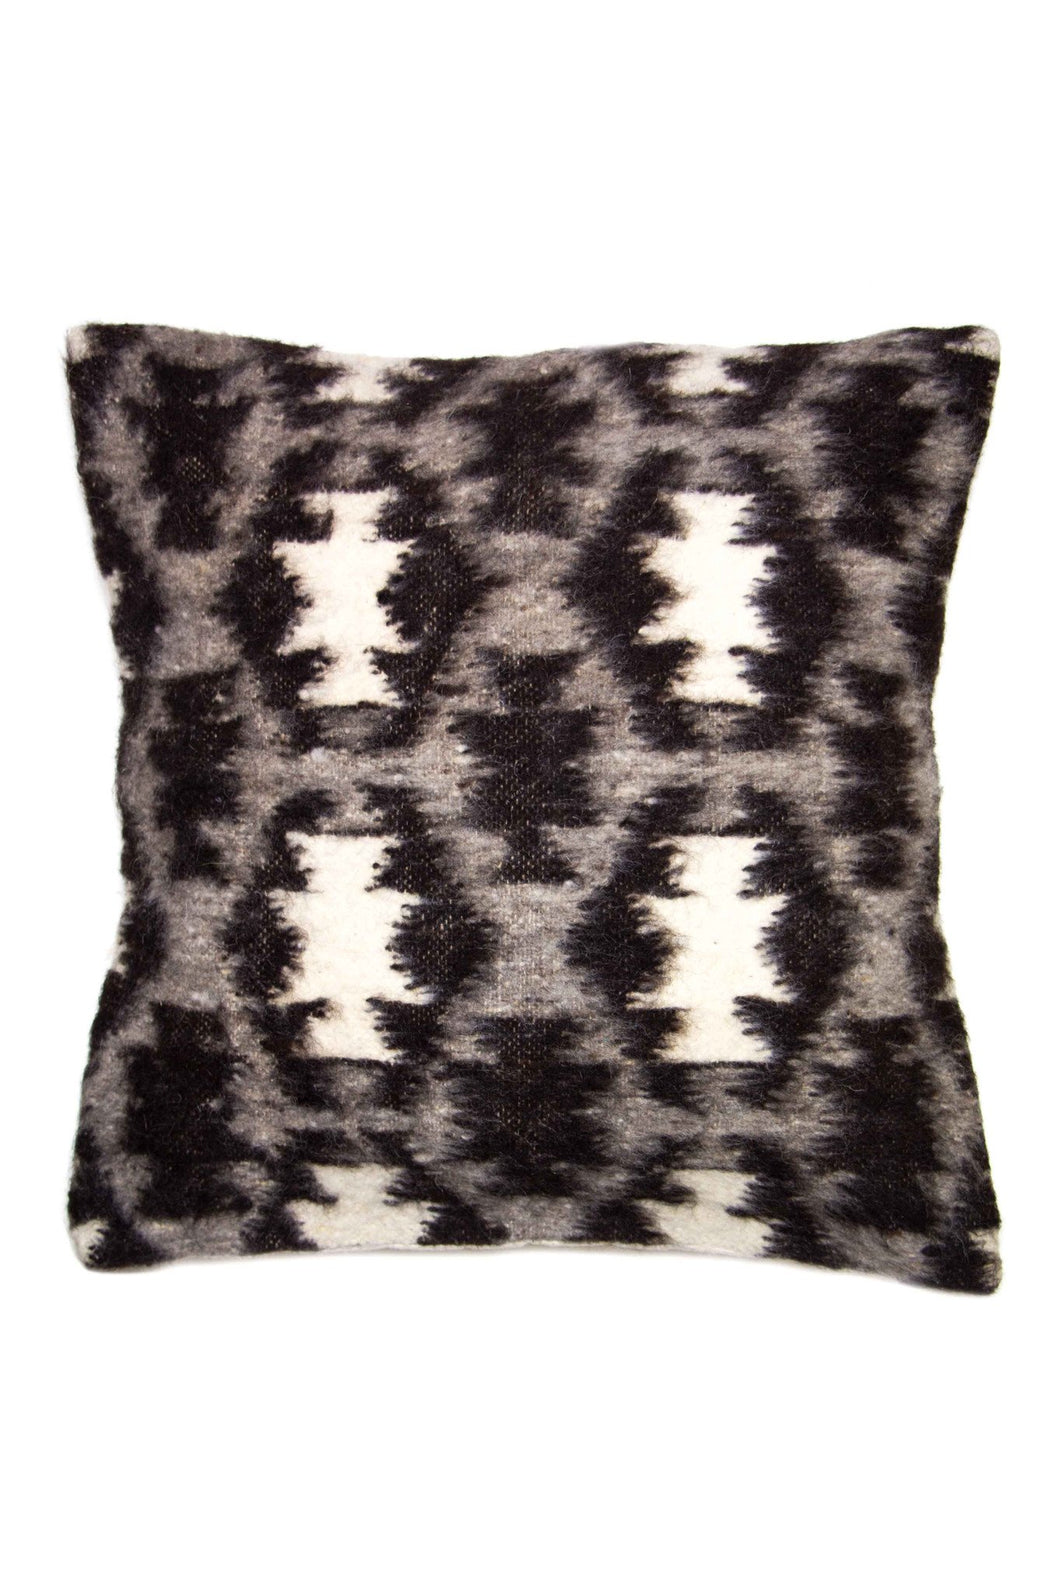 Momosteco Graphic Wool Pillow